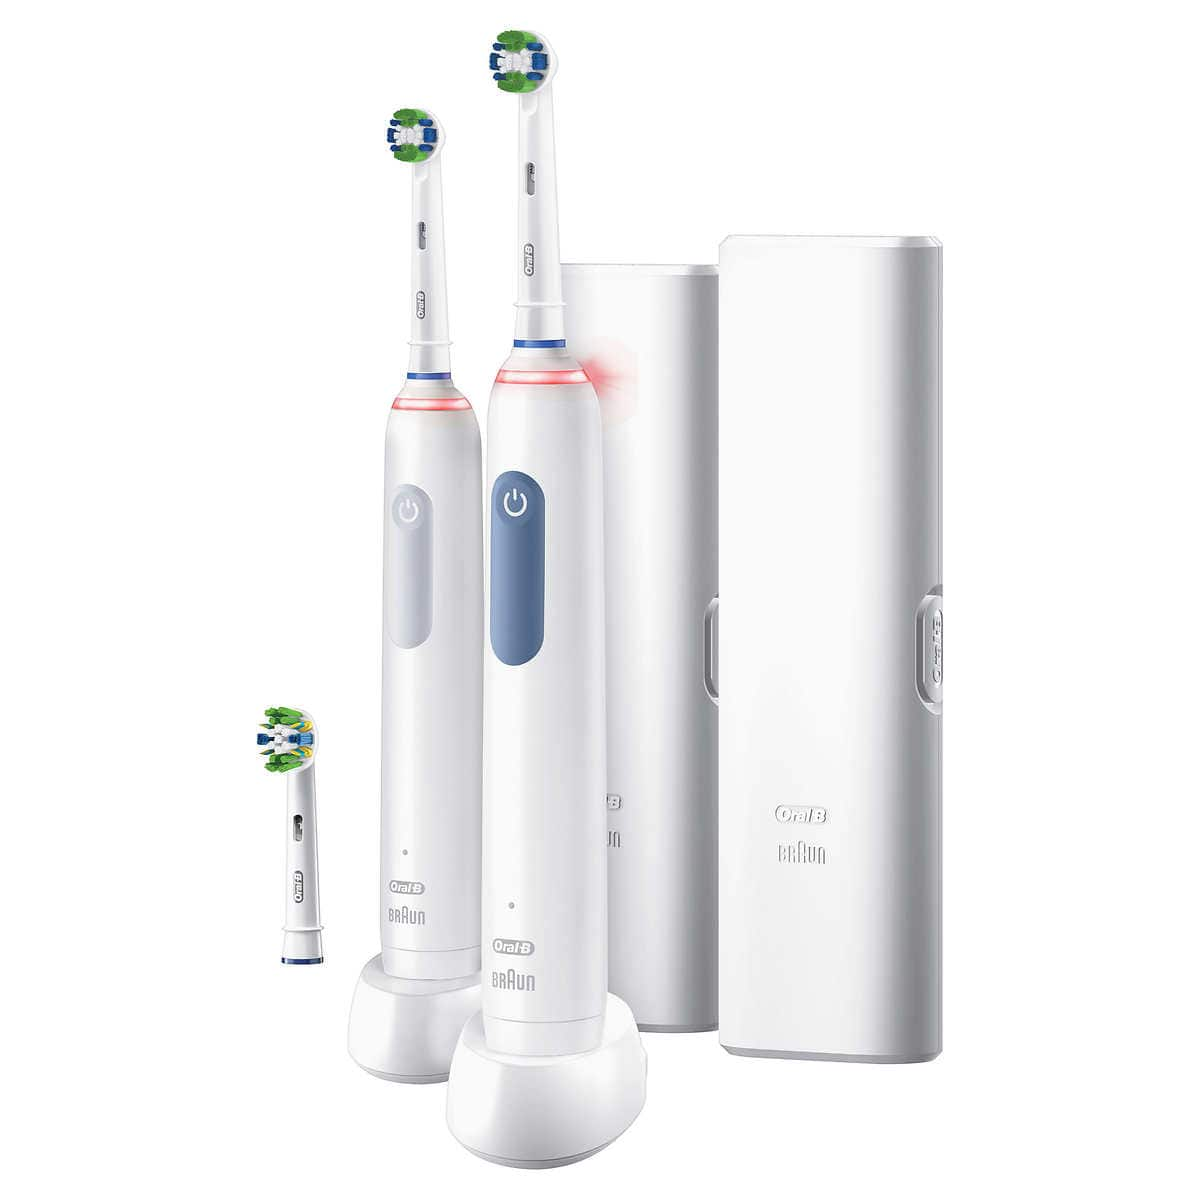 Oral-B Smart Clean 360 Rechargeable Toothbrushes, 2-Pack $65